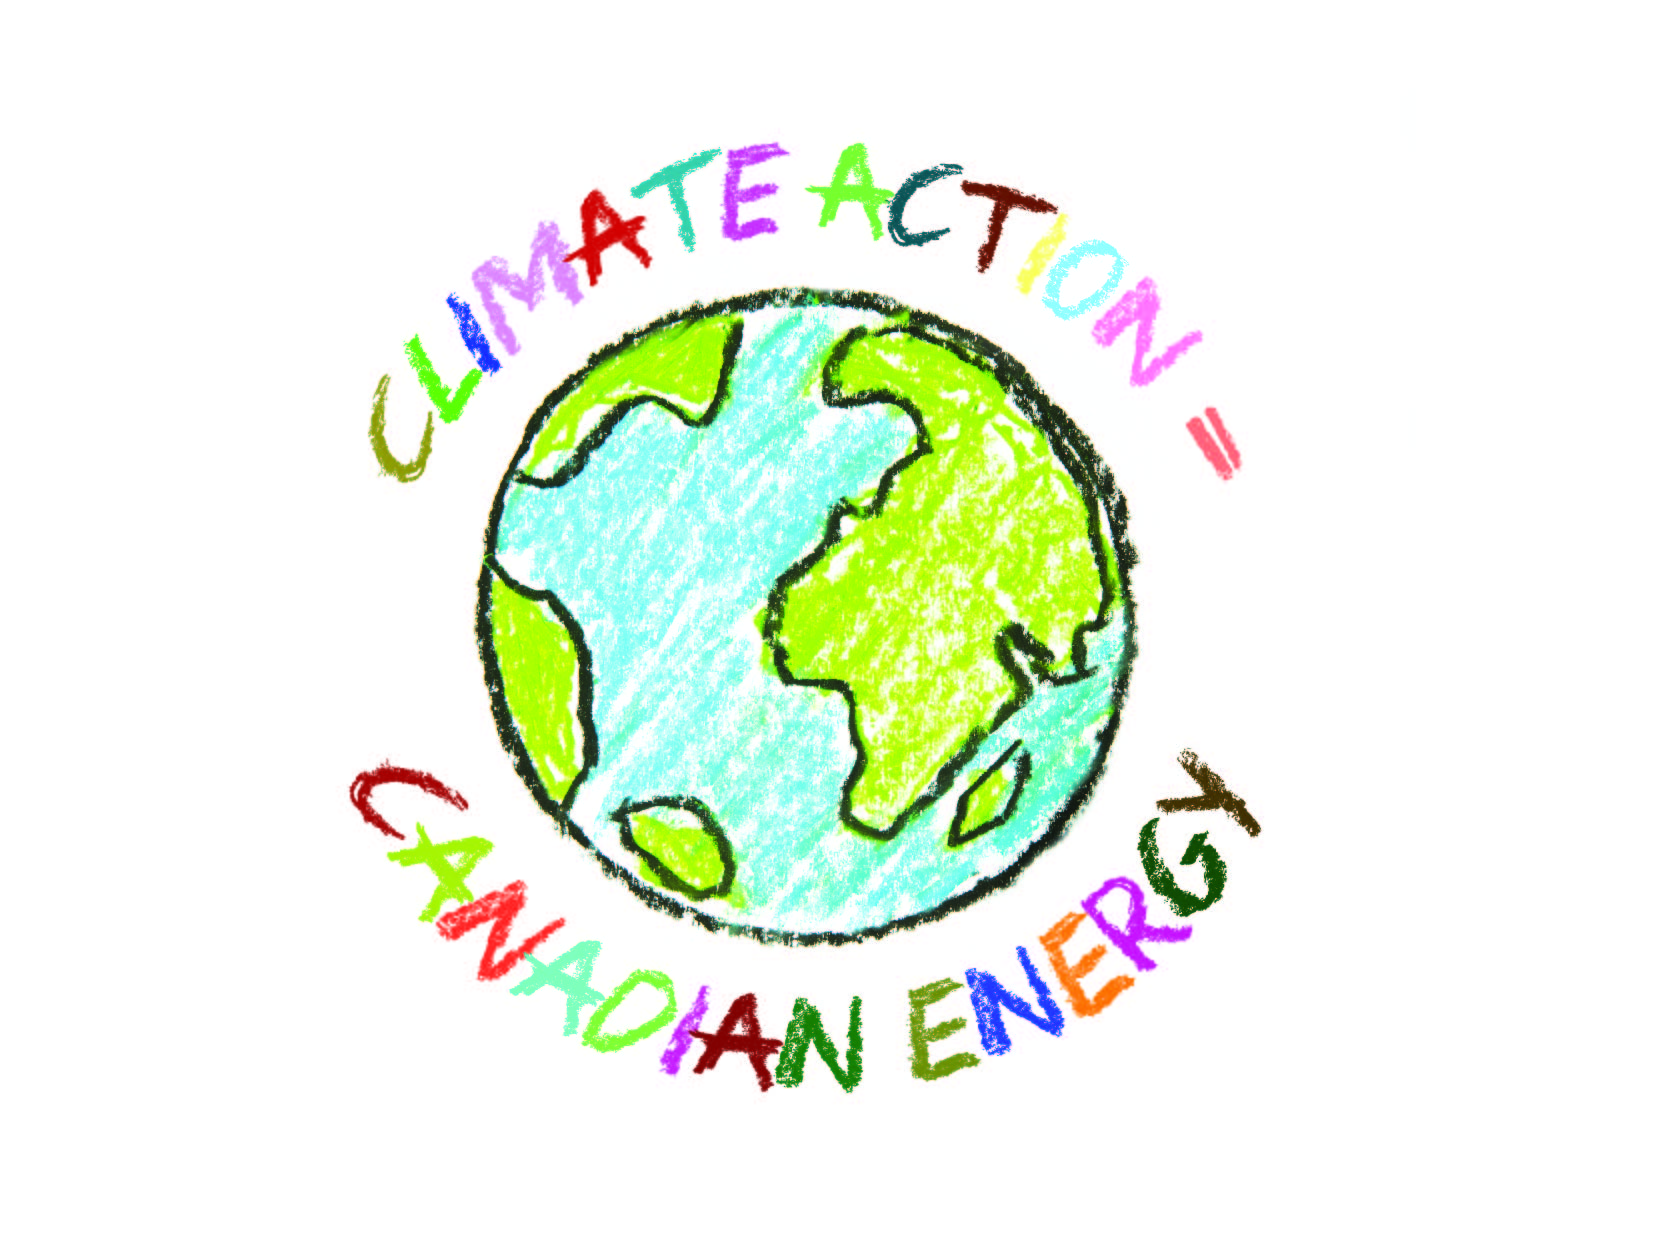 If you take climate action serious, you support Canadian oil